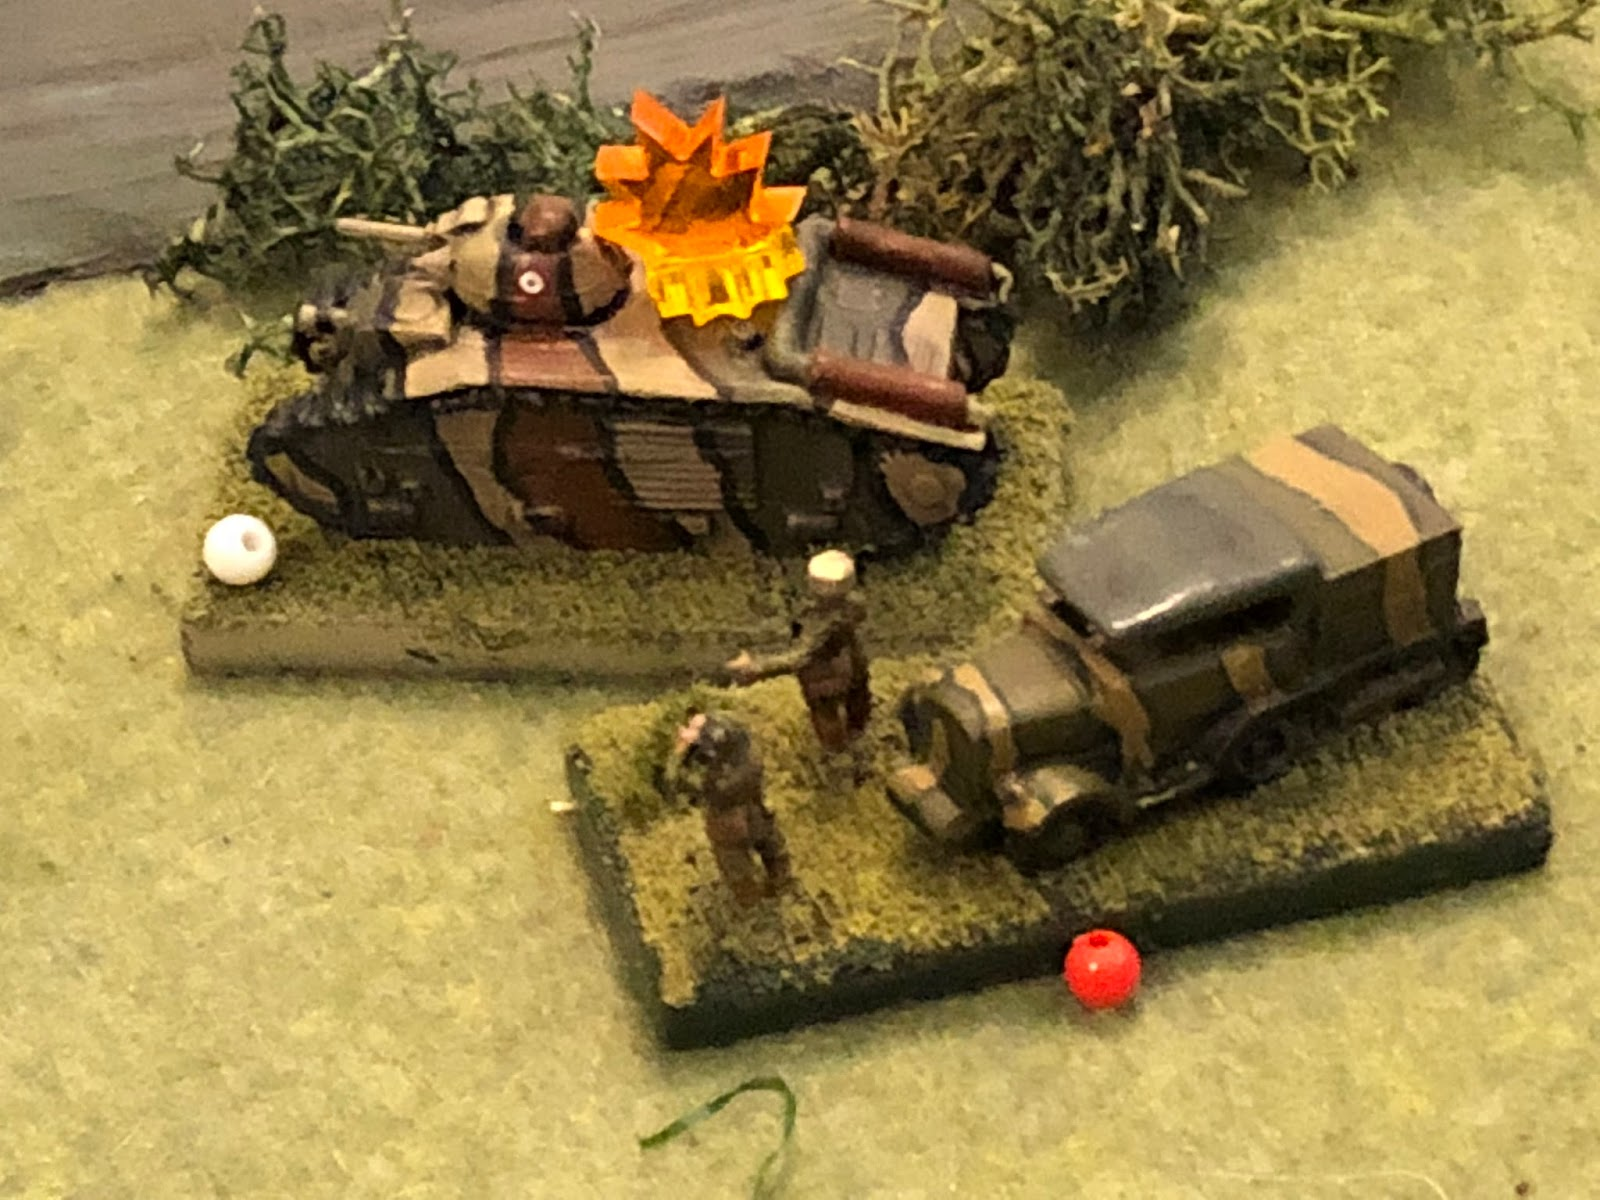 The low velocity 75mm round slams into the enemy tank, the explosion suppressing Major Renaut and his command group.  Sgt Guillaume, inside the stricken tank, searches about, thankful to be alive.  The Char B is immobilized, but the crew has not only stayed in the vehicle, they remain prepared to fight!  *Some incredible dice rolling by the boy saw the crew stay in the immobilized tank AND not become suppressed, each with a 33% chance of occurring (I think he rolled back to back 6s)...